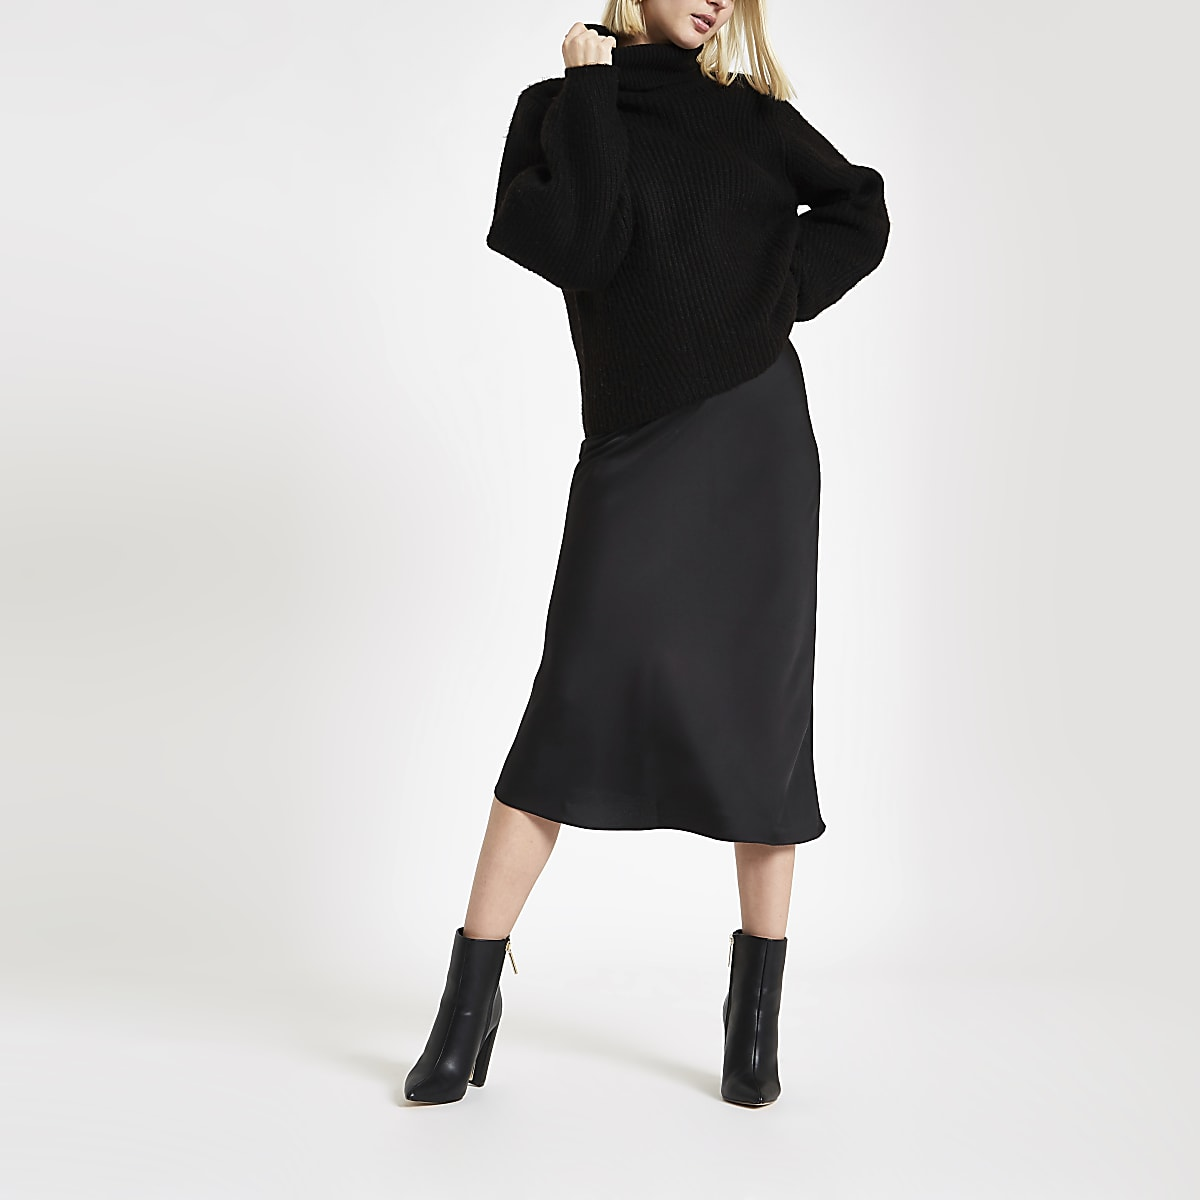 Black bias cut midi skirt